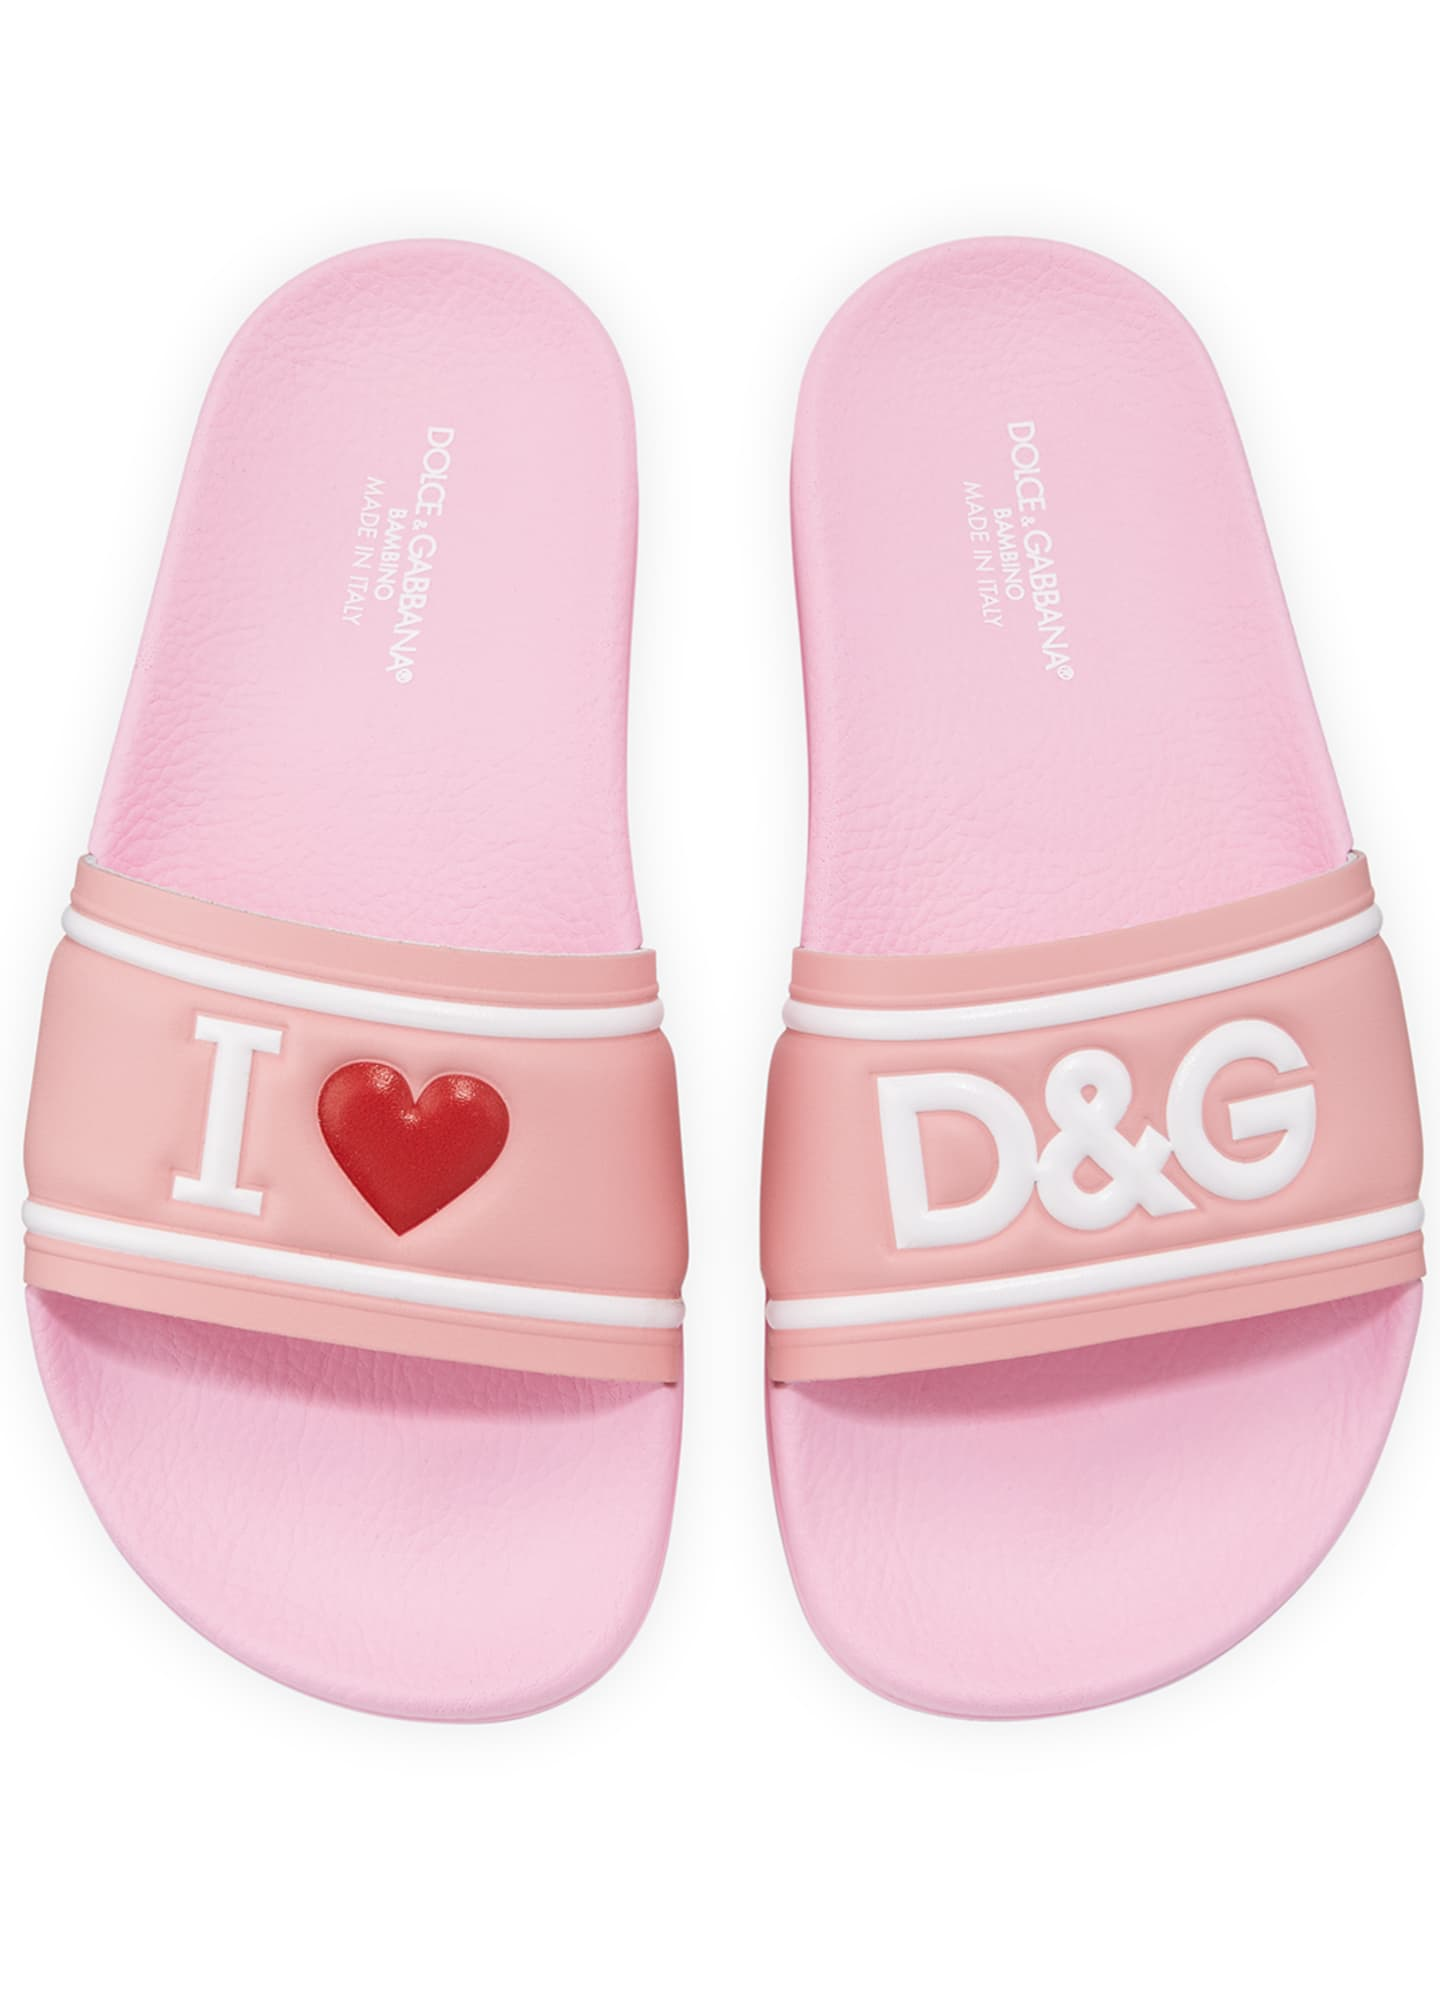 Dolce & Gabbana Leather I Heart D&G Pool